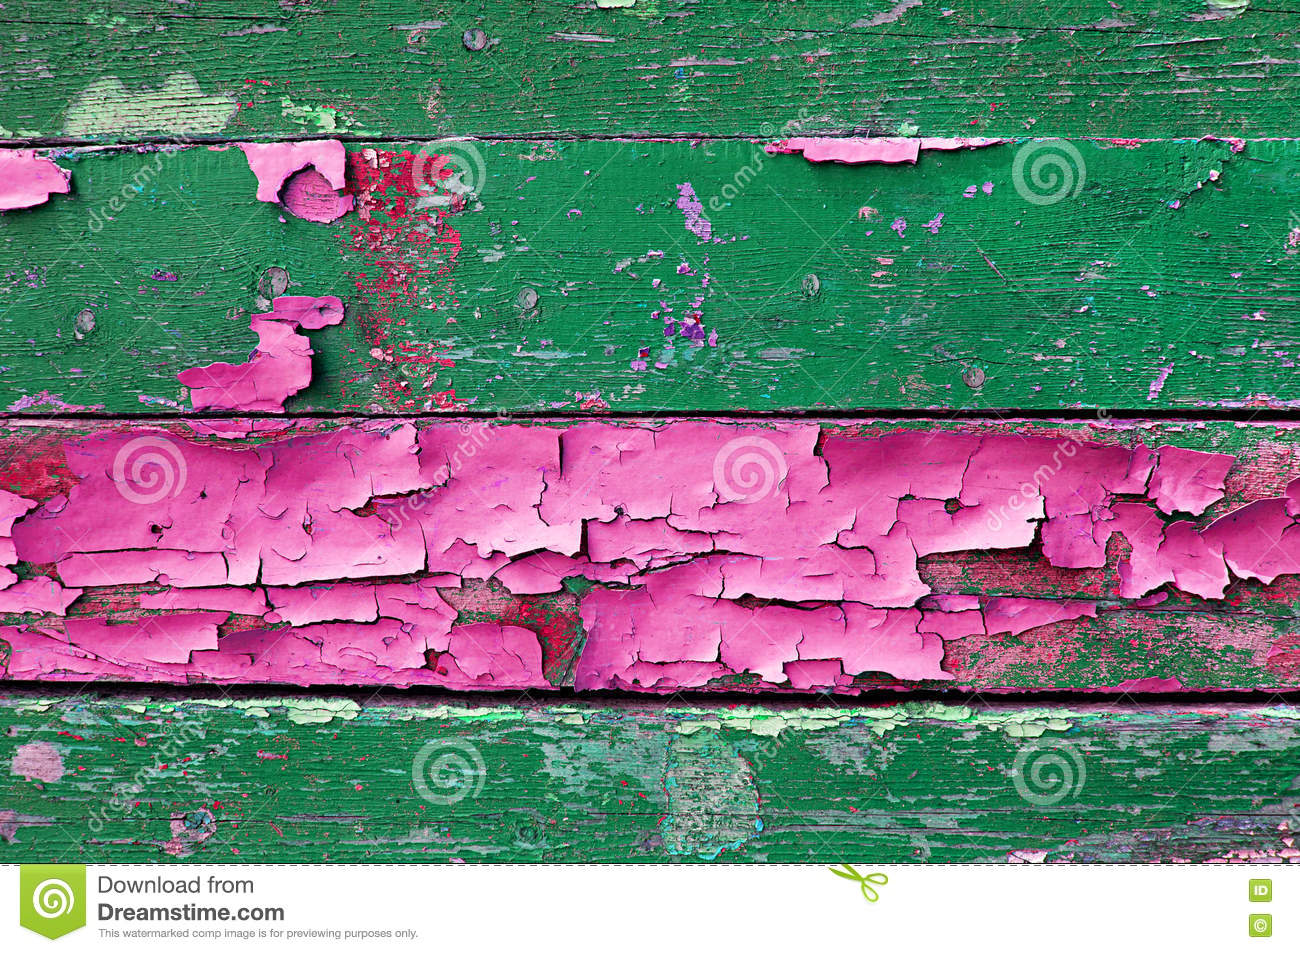 Peeling paint on old weathered wood with peeling paint of green and pink colors- textured wooden background